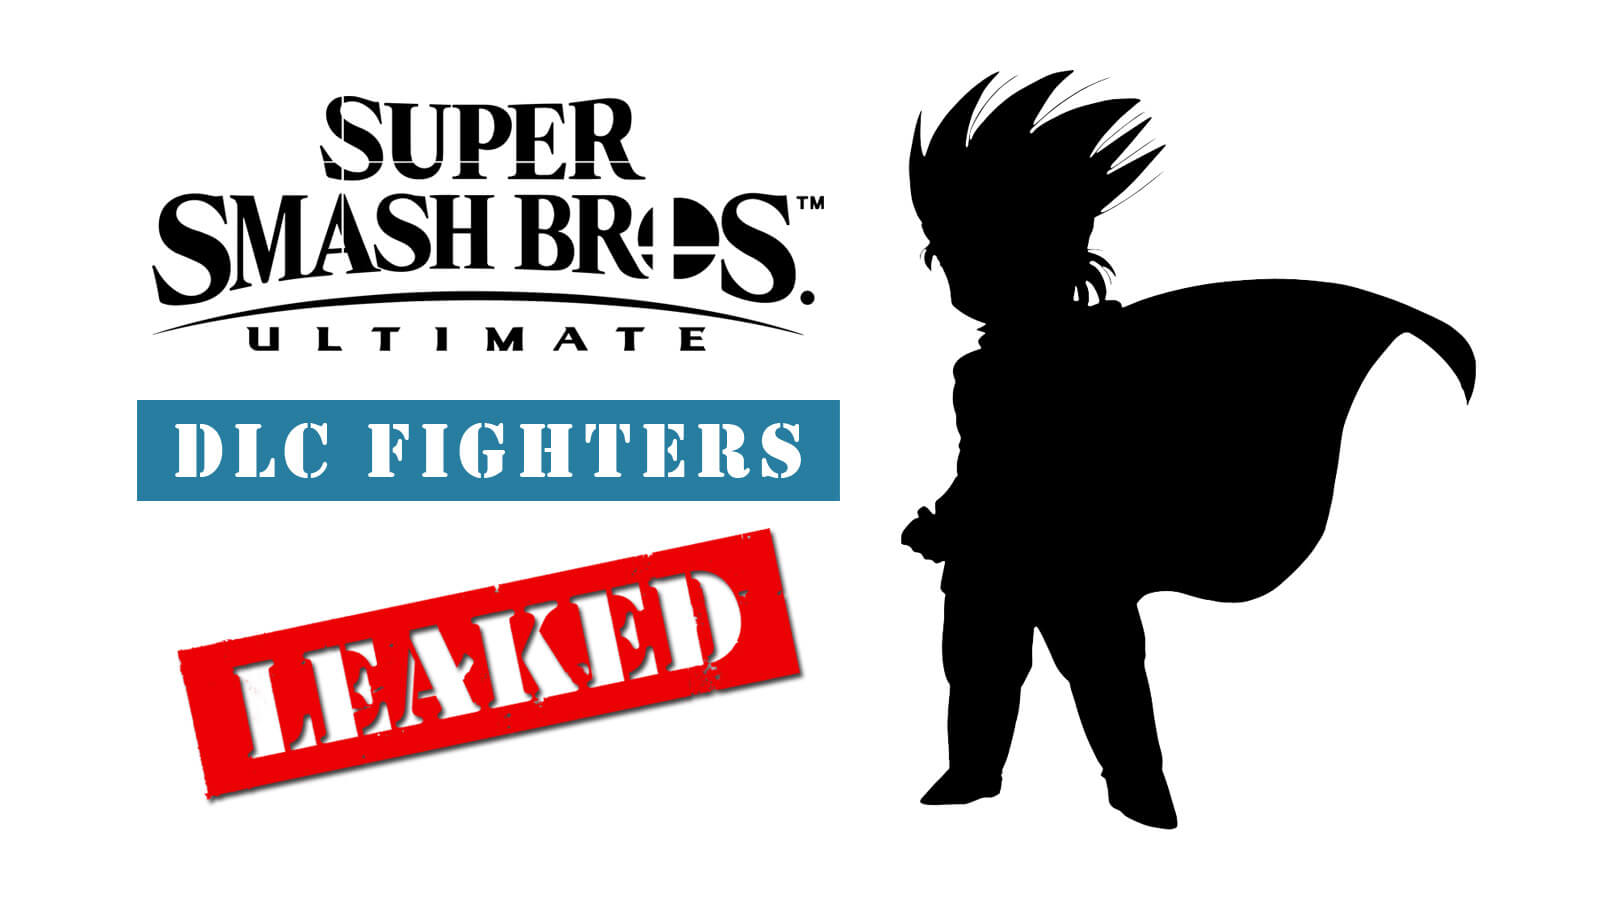 Super Smash Bros  Ultimate DLC Fighters Leaked - Gameslaught